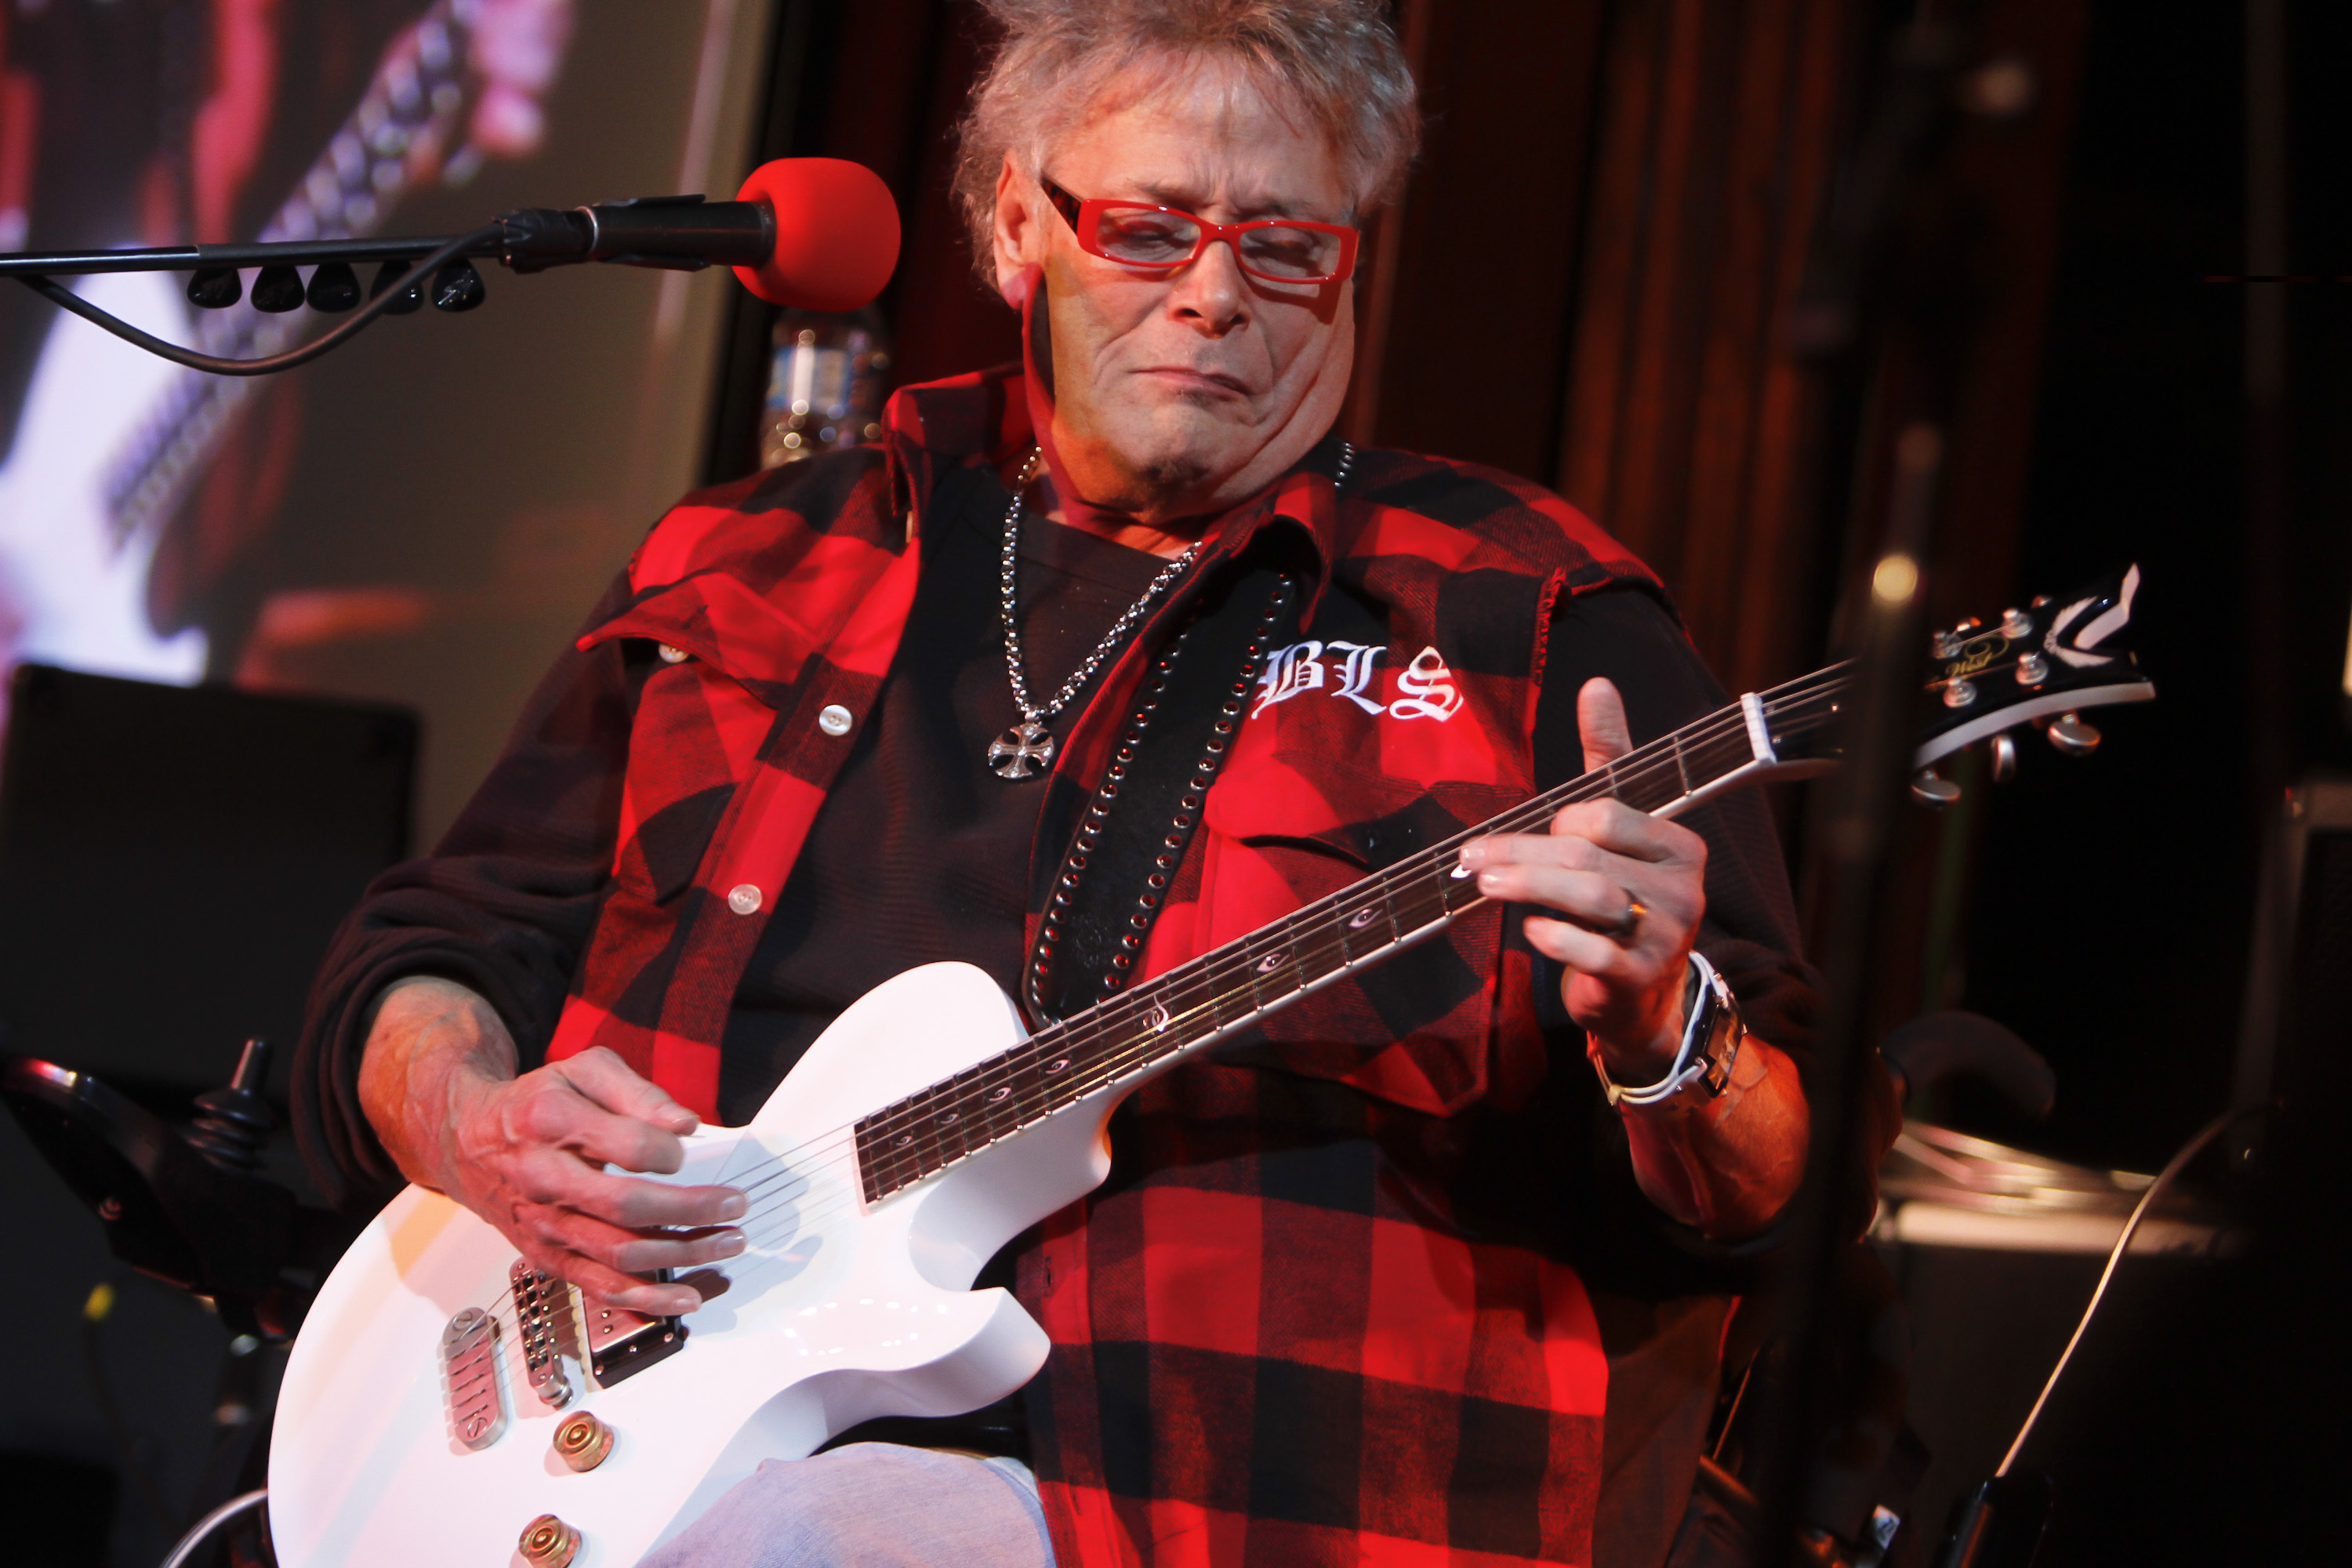 NEW YORK, NY - JANUARY 31: Leslie West of Mountain performs at B.B. King Blues Club & Grill on January 31, 2012 in New Yo